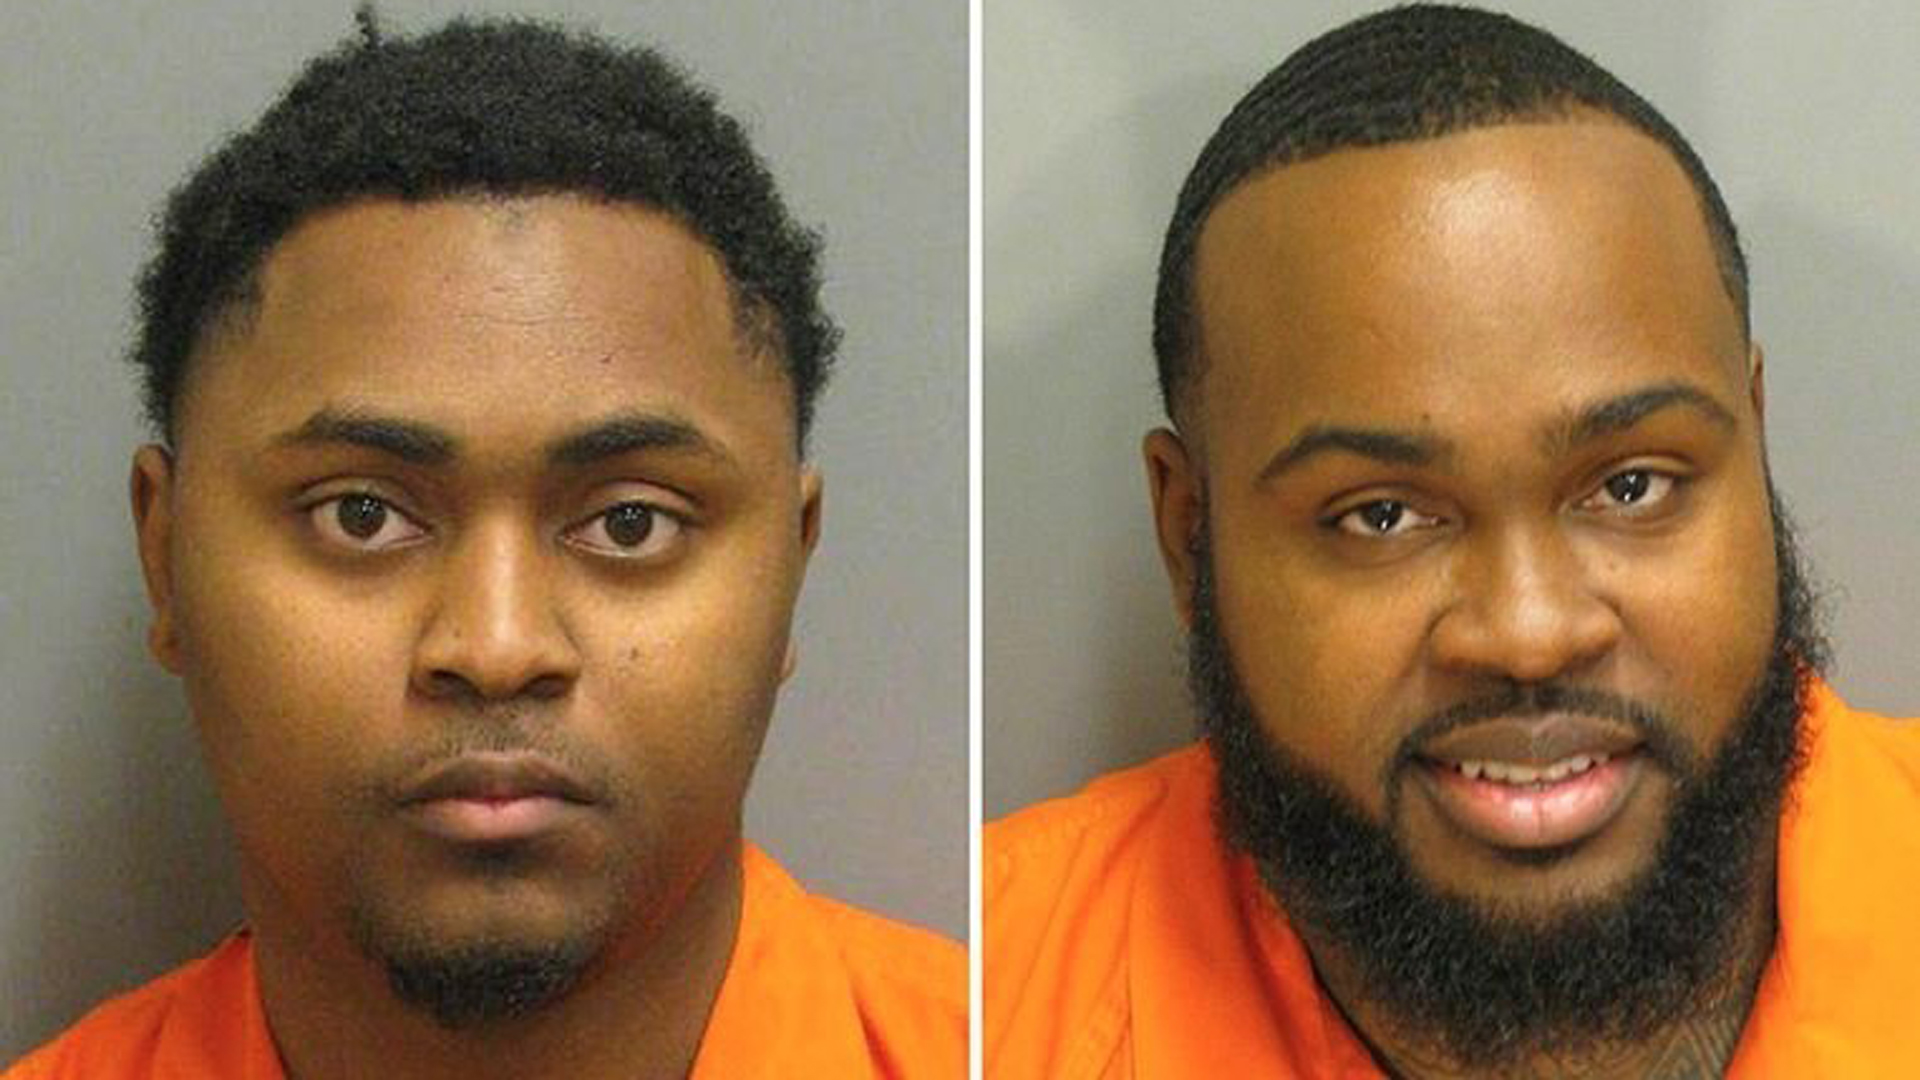 Josephus Boone, left, is charged with killing a man who testified against his brother, Jacquees, right.(Credit: Montgomery County, Alabama Sheriff's Office)